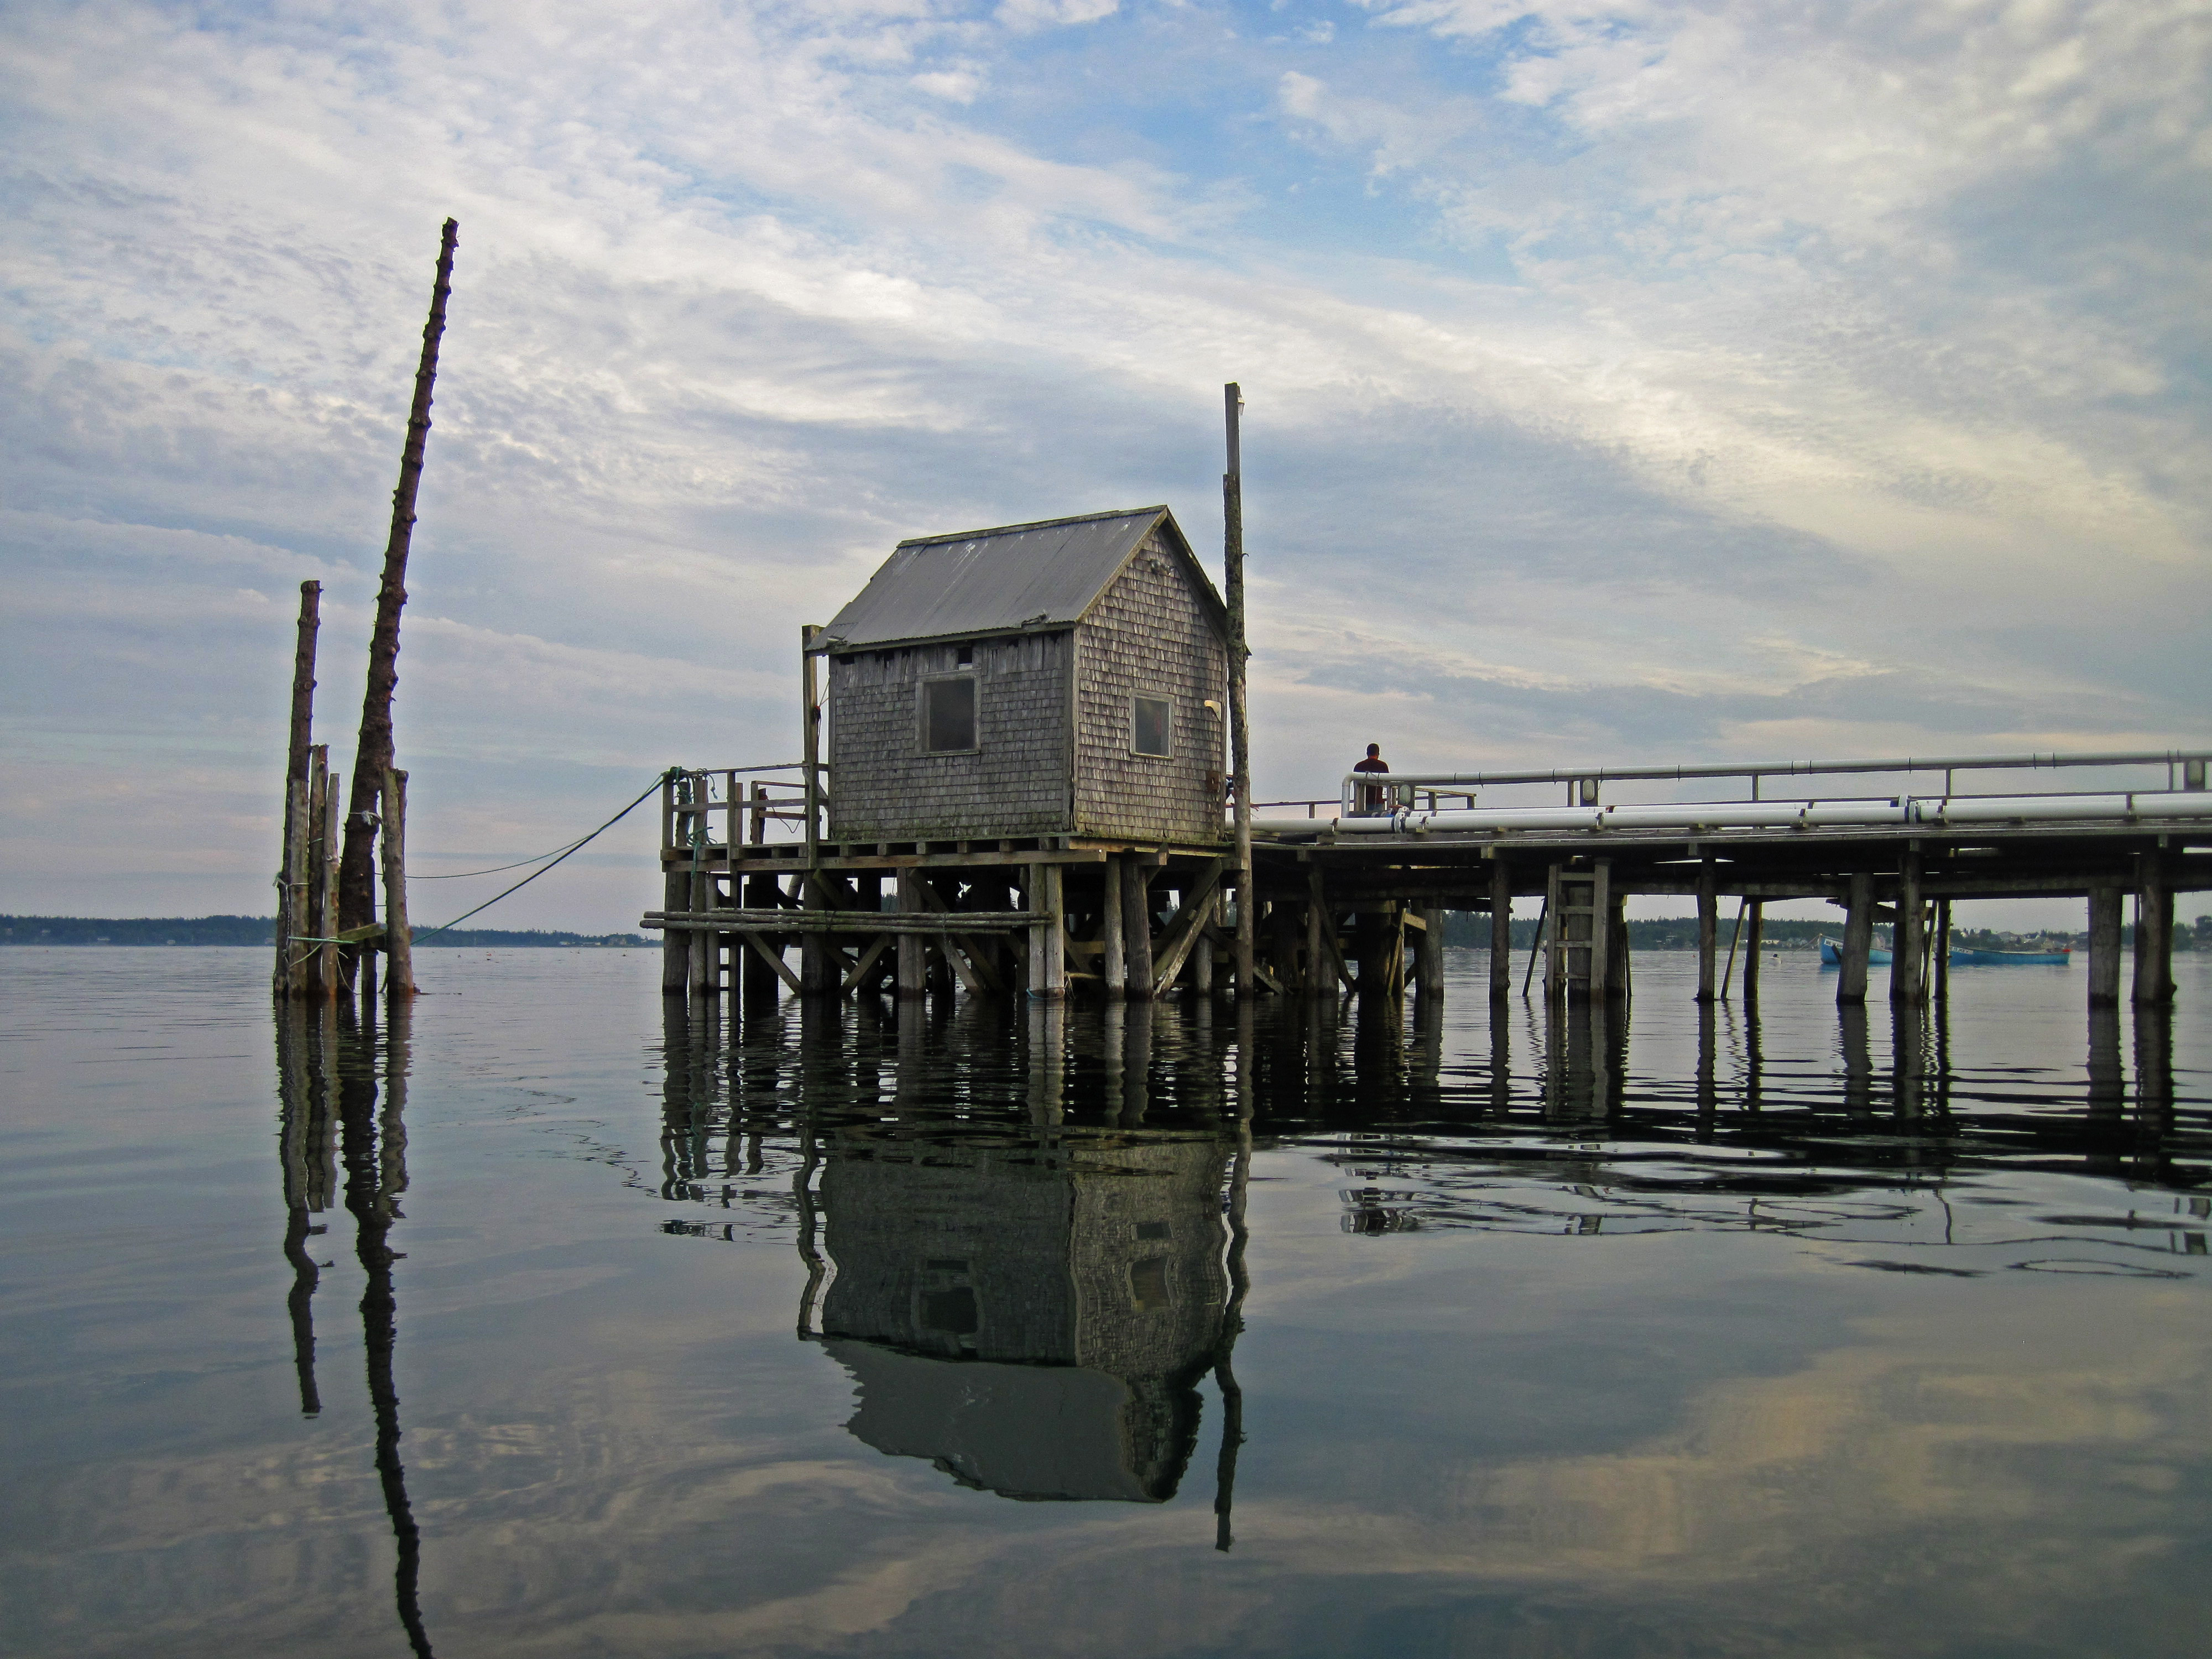 Jonesport Town Pier | Flickr - Photo Sharing!jonesport town